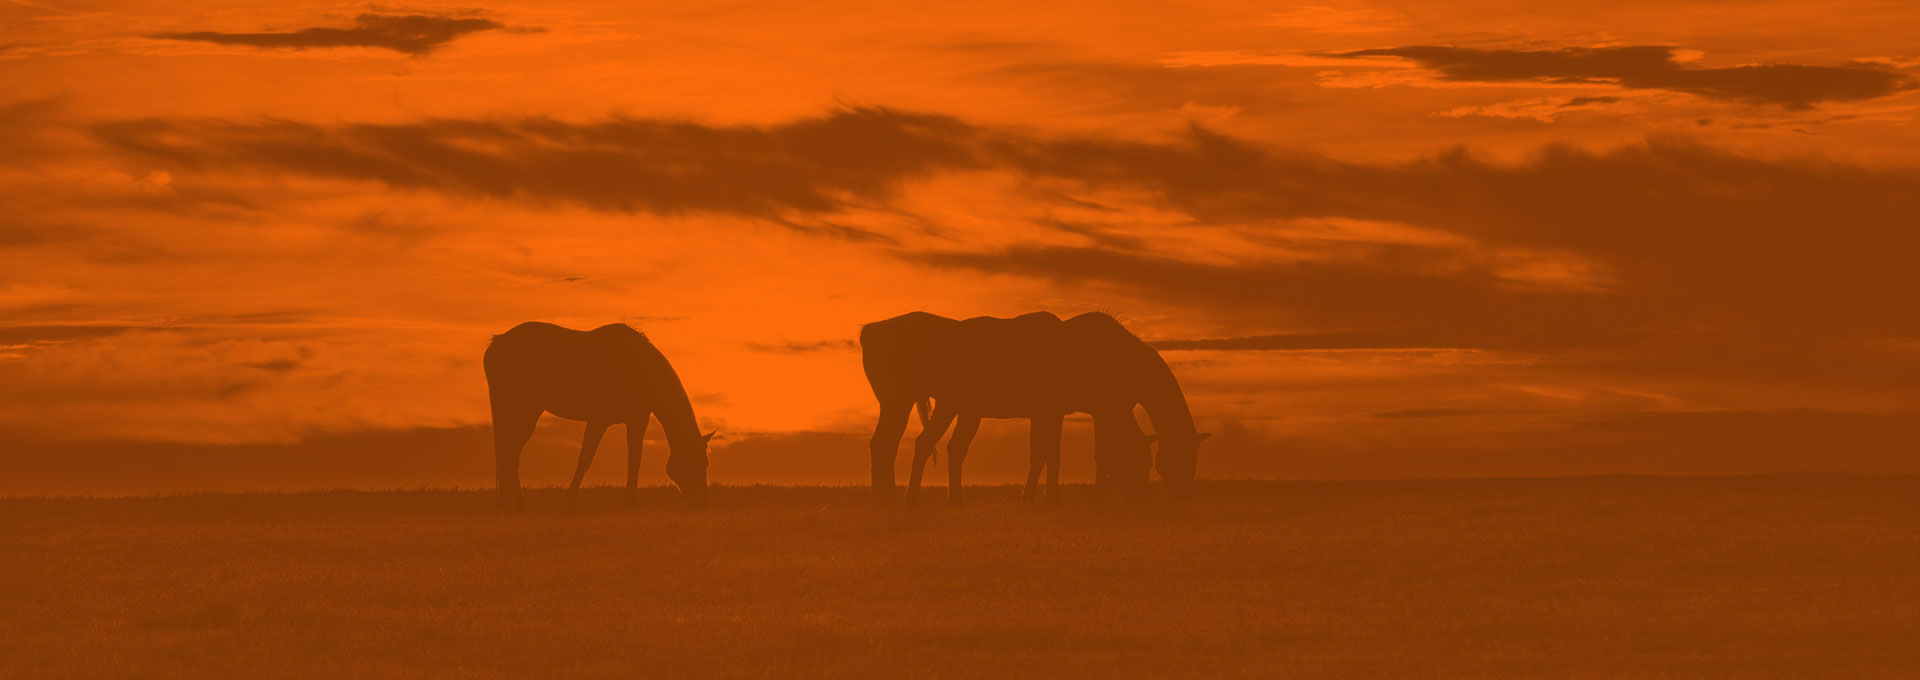 Custom Equine Nutrition: Caring For Horses While Caring For the Planet